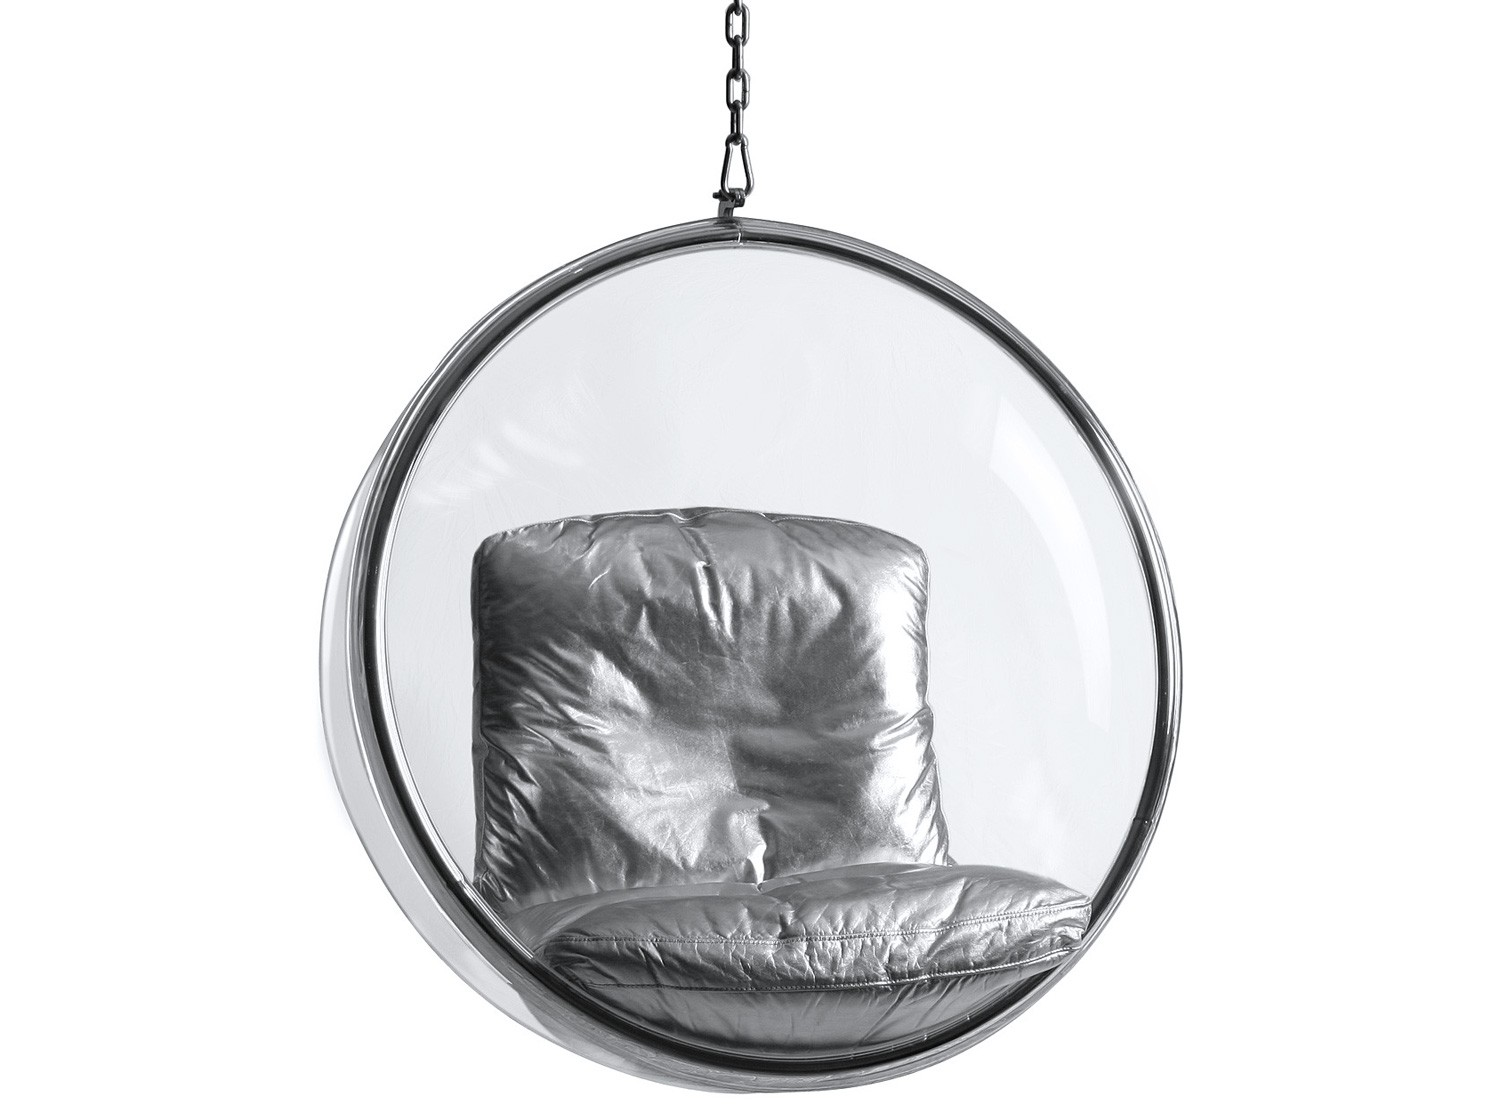 Egg Chair Adelaide Bubble Chair By Eero Aarnio Platinum Replica